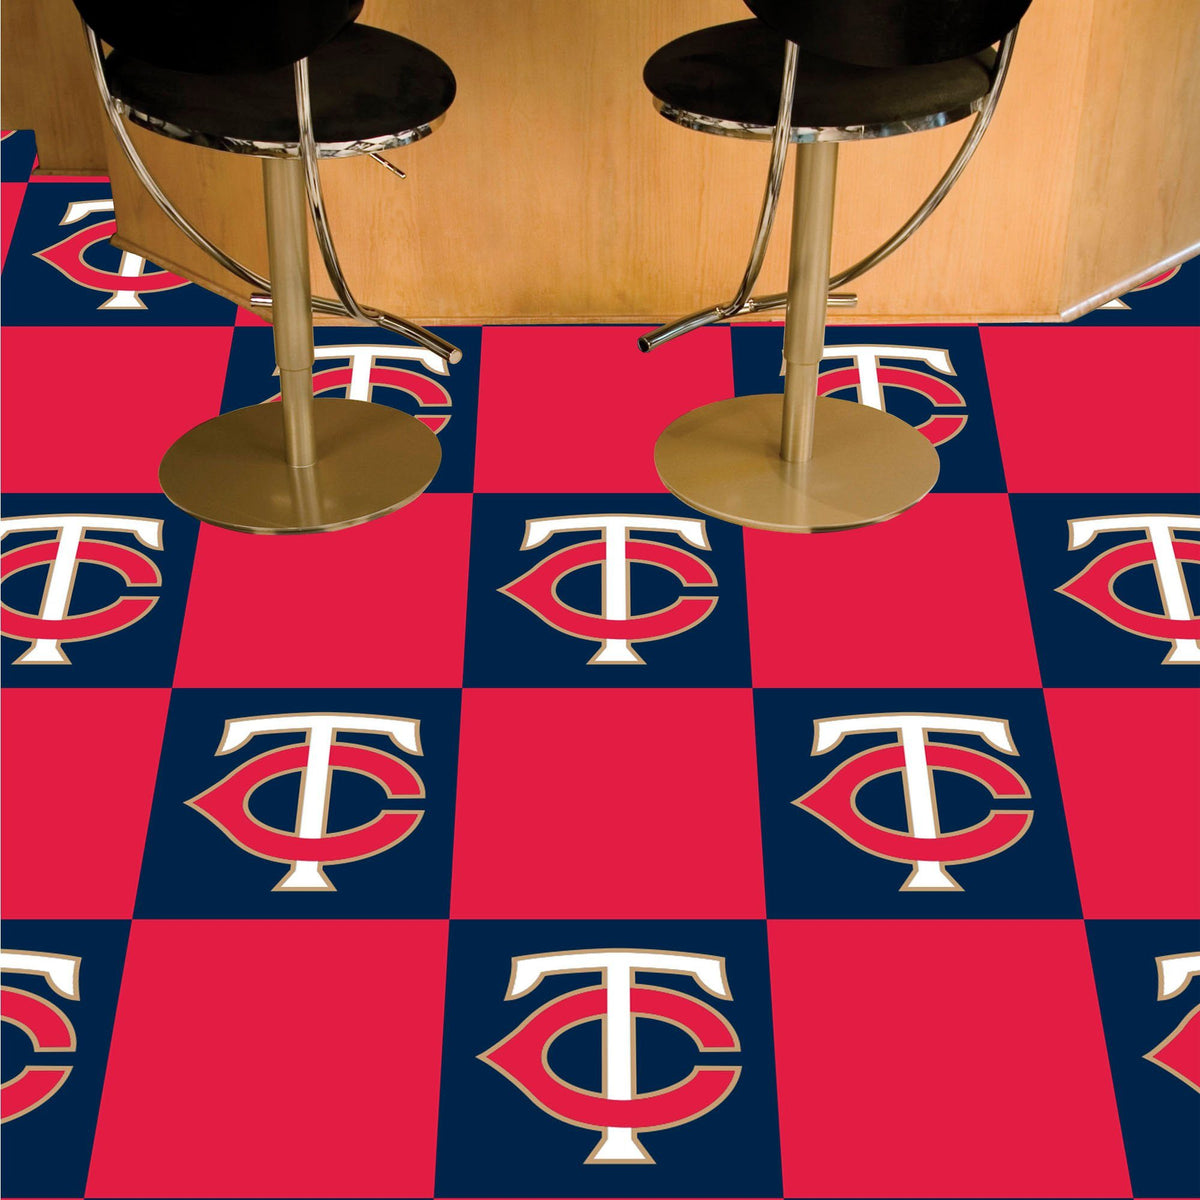 MLB - Team Carpet Tiles MLB Mats, Carpet Tile Flooring, Team Carpet Tiles, MLB, Home Fan Mats Minnesota Twins